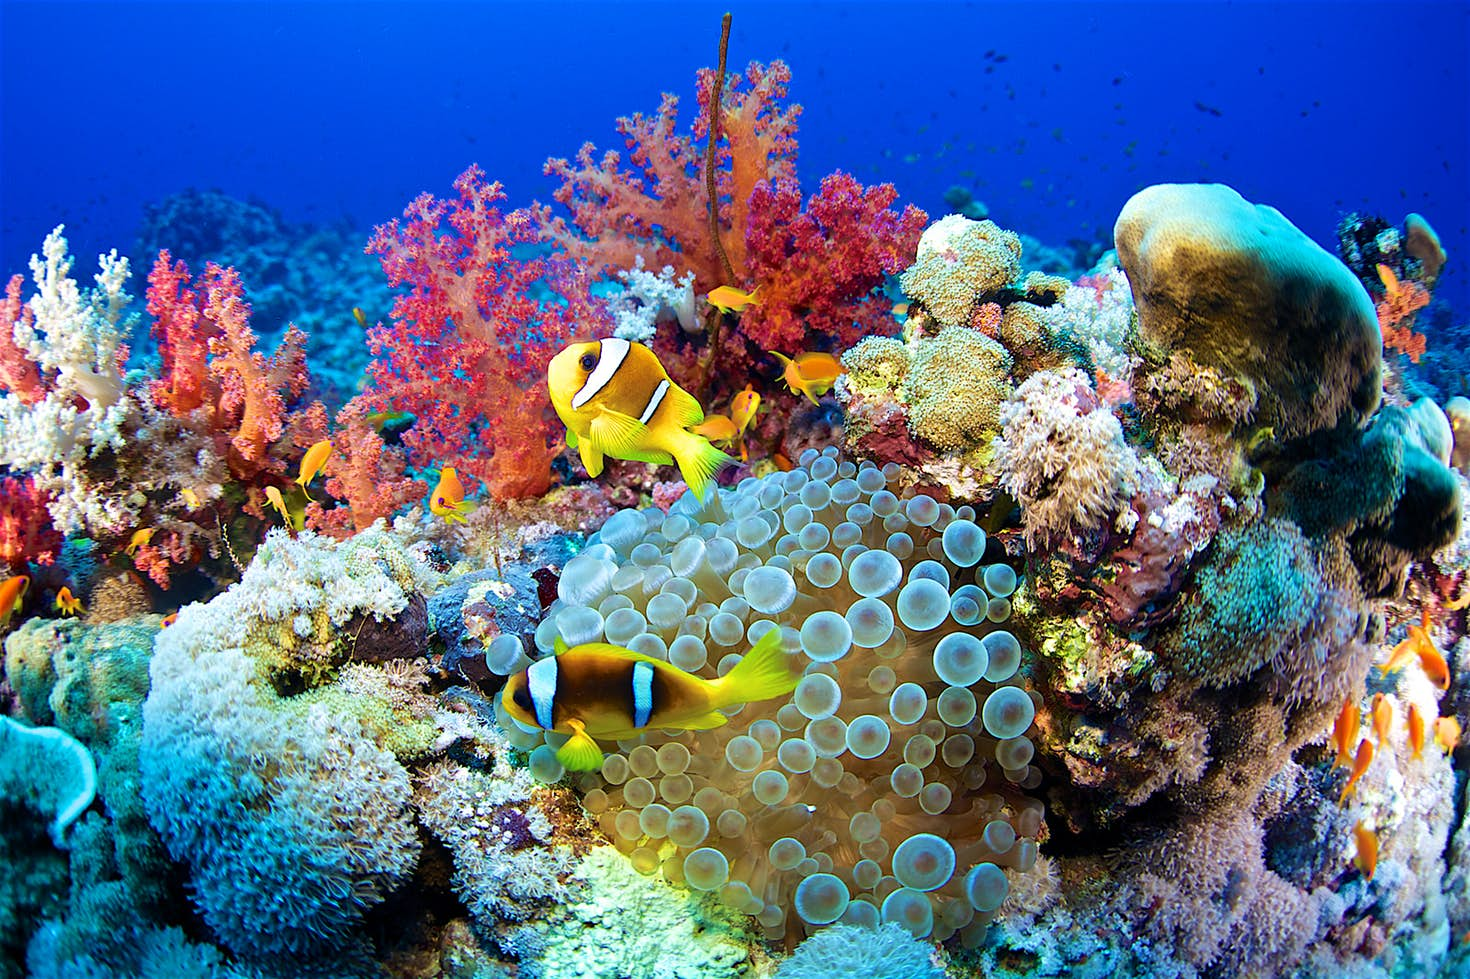 Straits of Gubal - Things to Do in Hurghada - Egypt Tours Portal